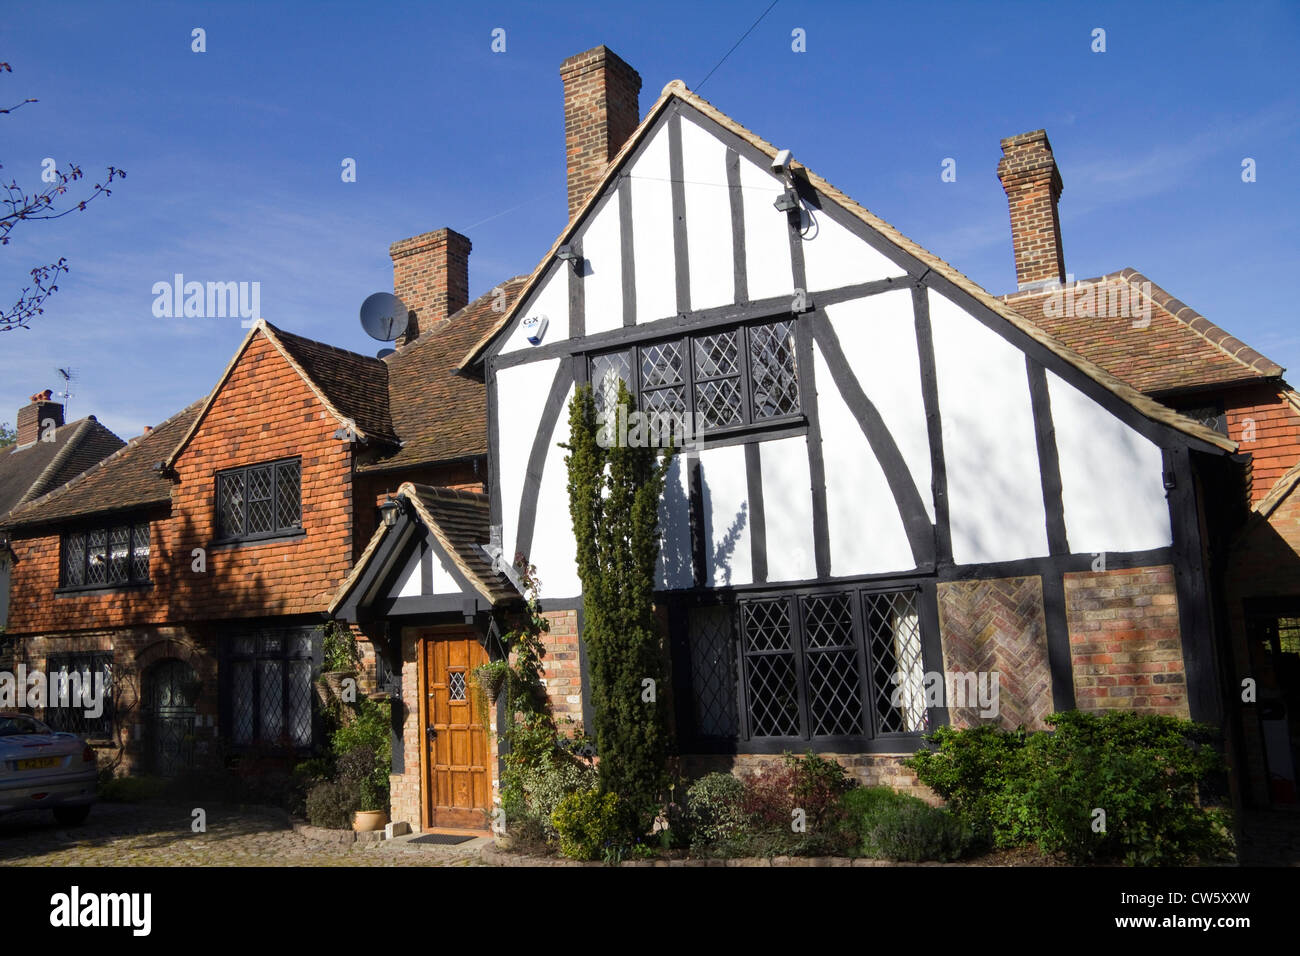 Tudor Style House Pictures Mock Tudor House In The Suburb Of Totteridge London